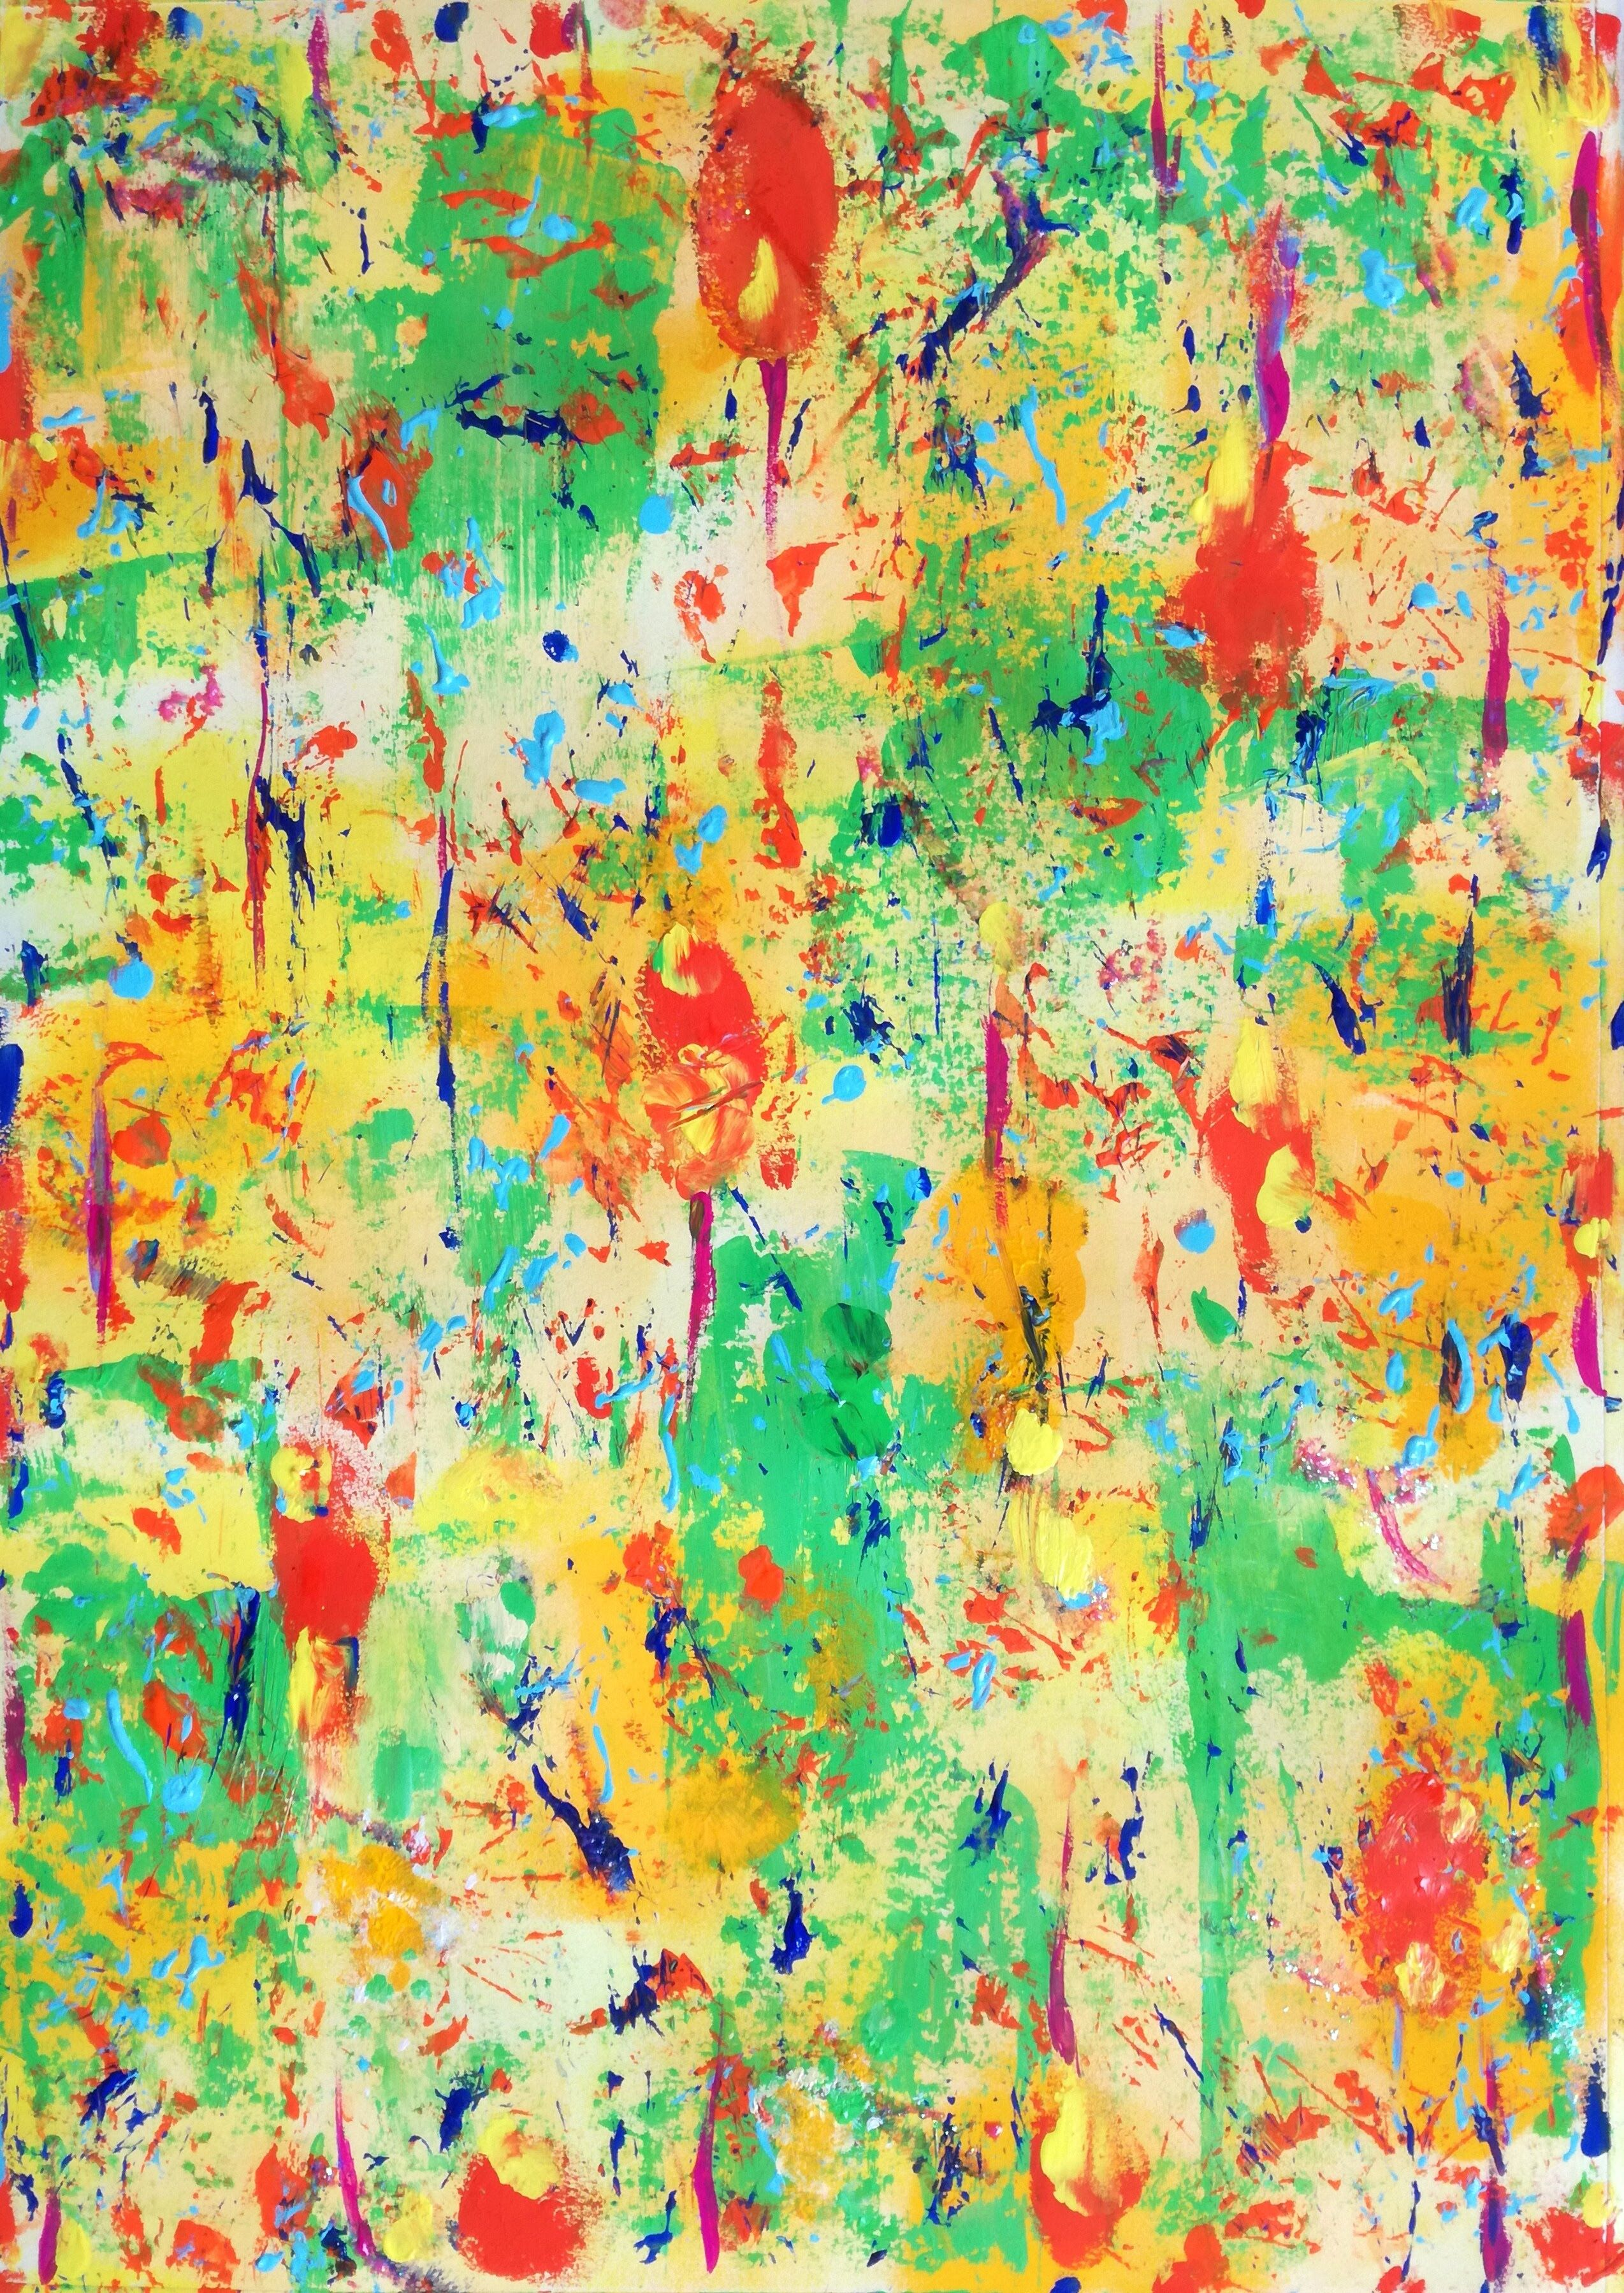 abstract painting made with acrylics on watercolor paper size 27